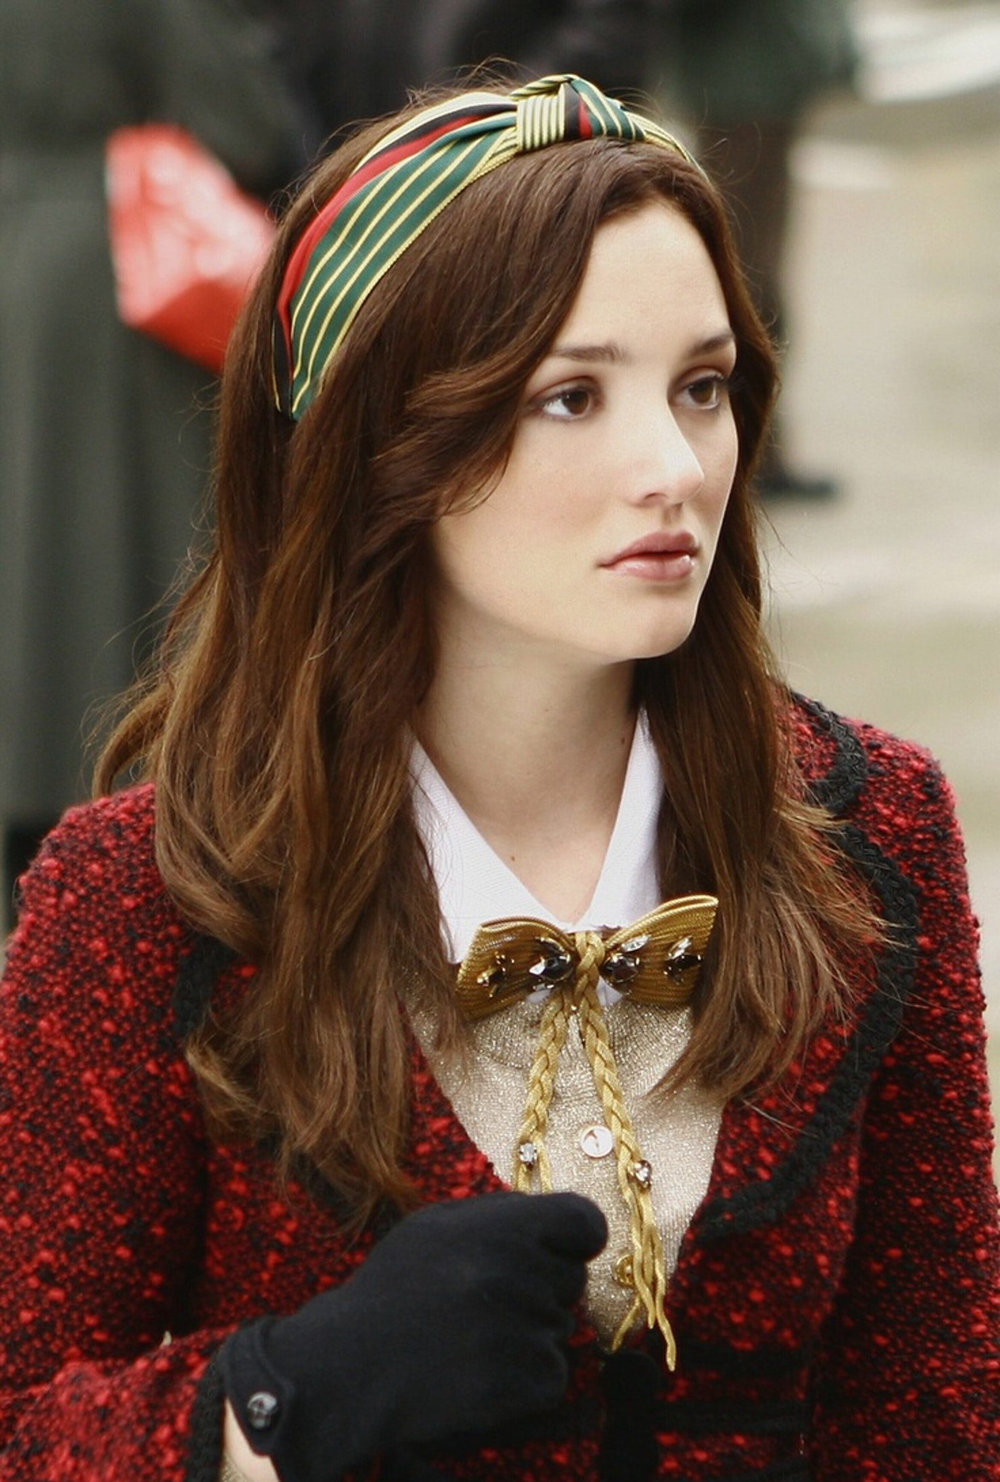 SOURCE:  https://www.bustle.com/articles/88629-7-blair-waldorf-headband-lookalikes-so-you-can-become-the-next-upper-east-side-it-girl